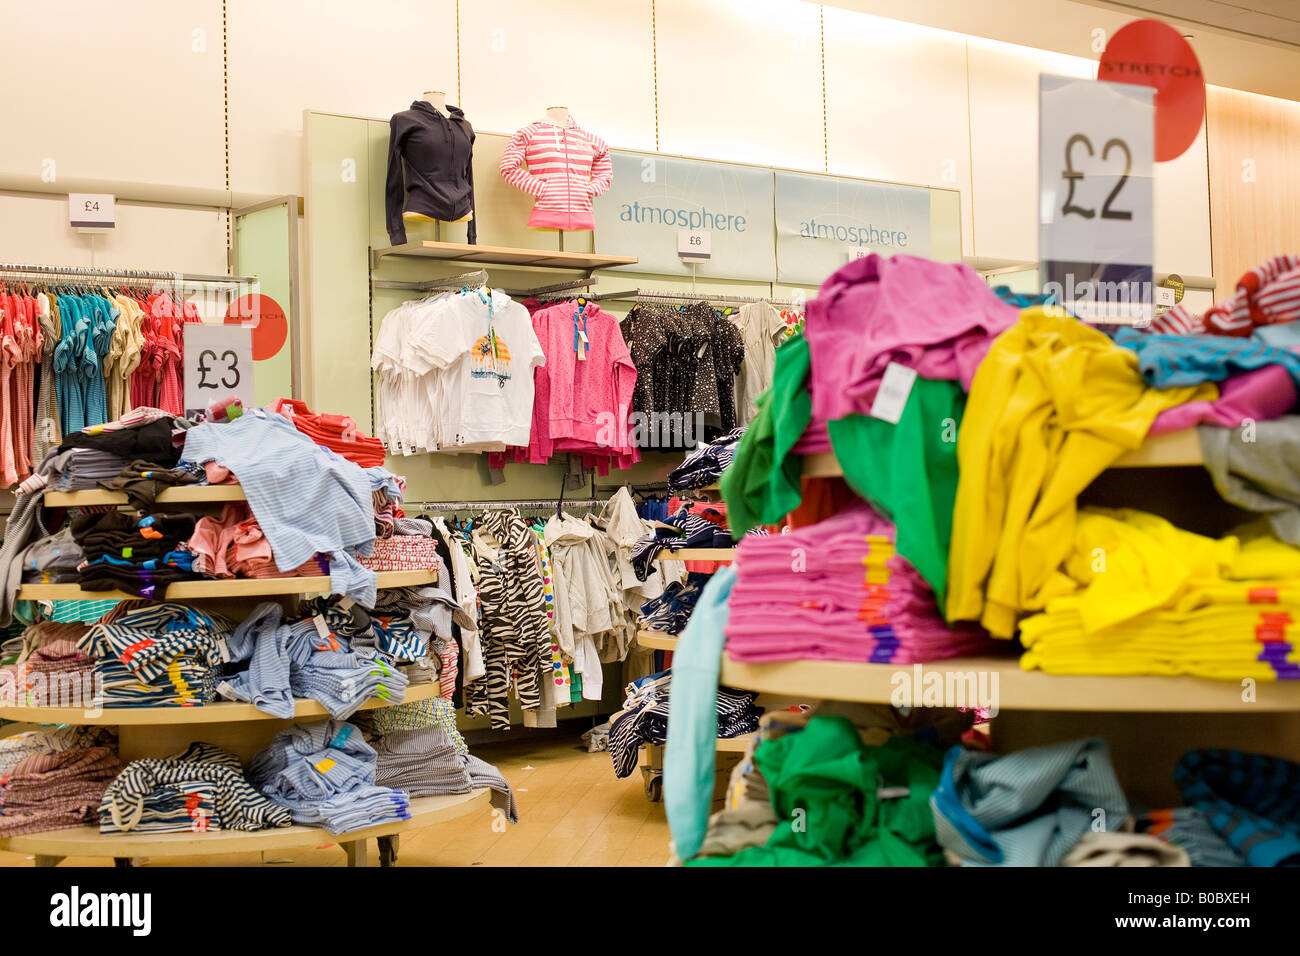 Cheapest online clothing stores. Online clothing stores